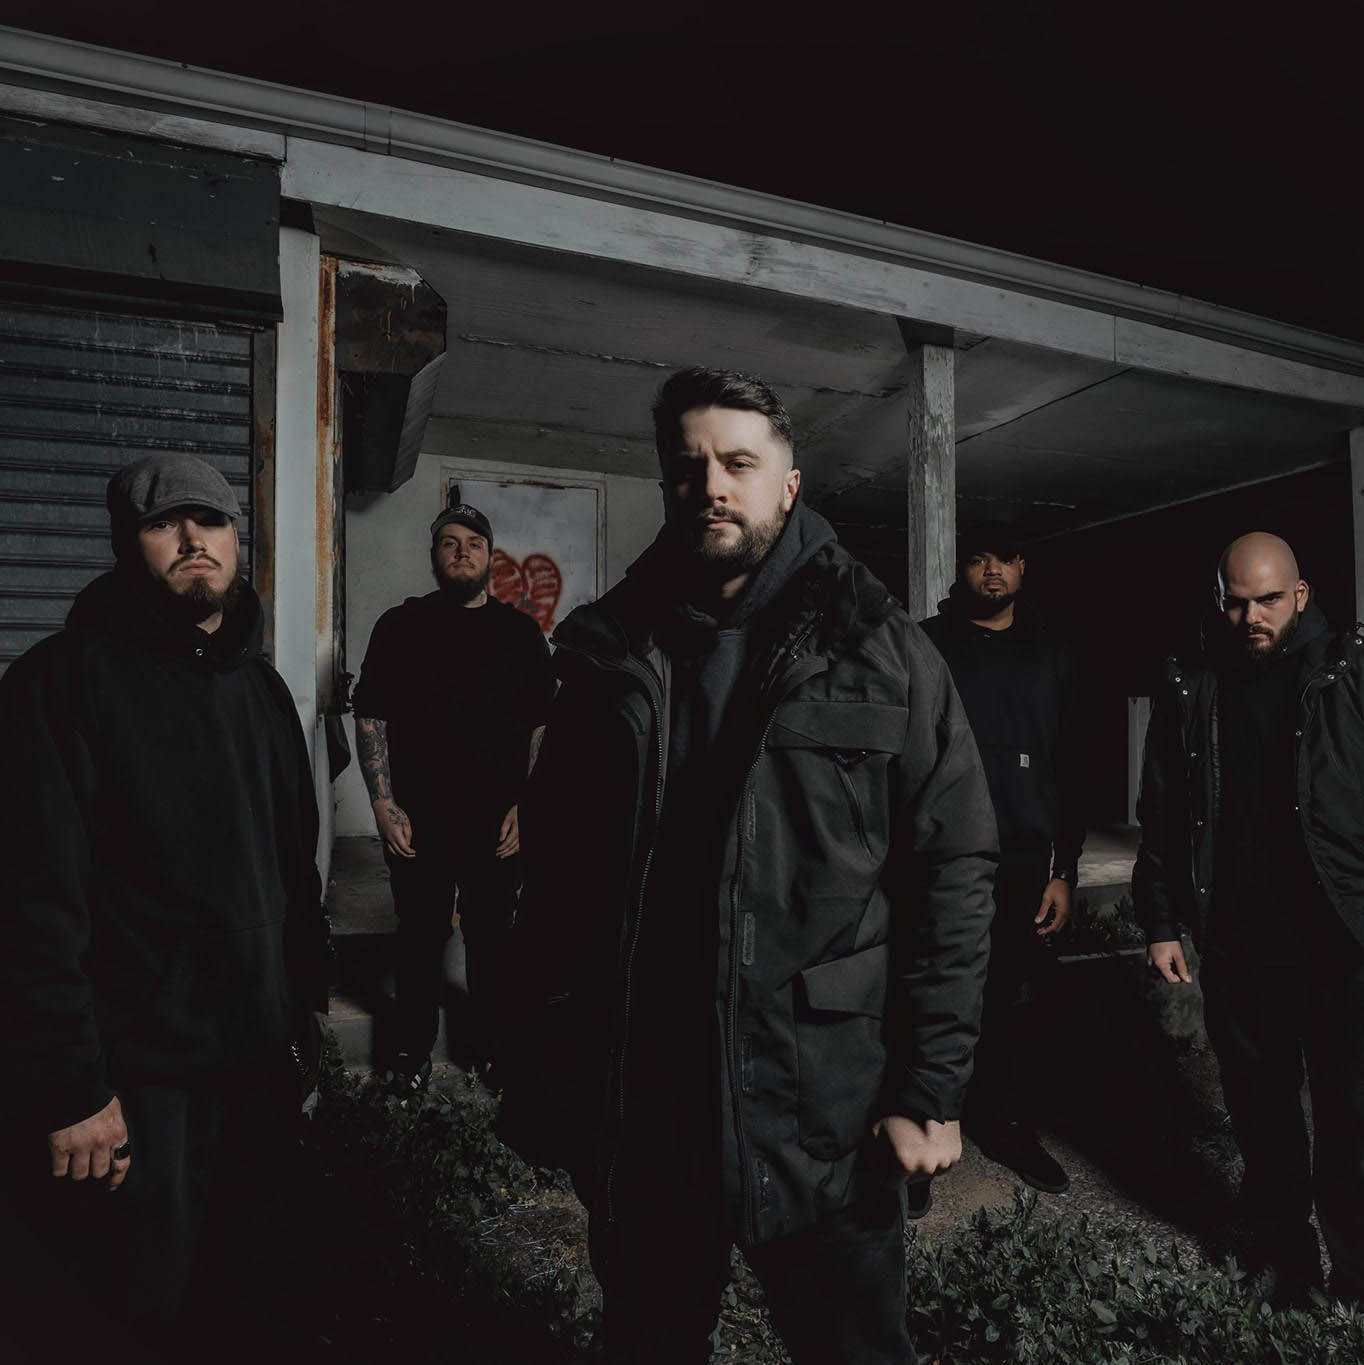 The Merciless Concept - Photo